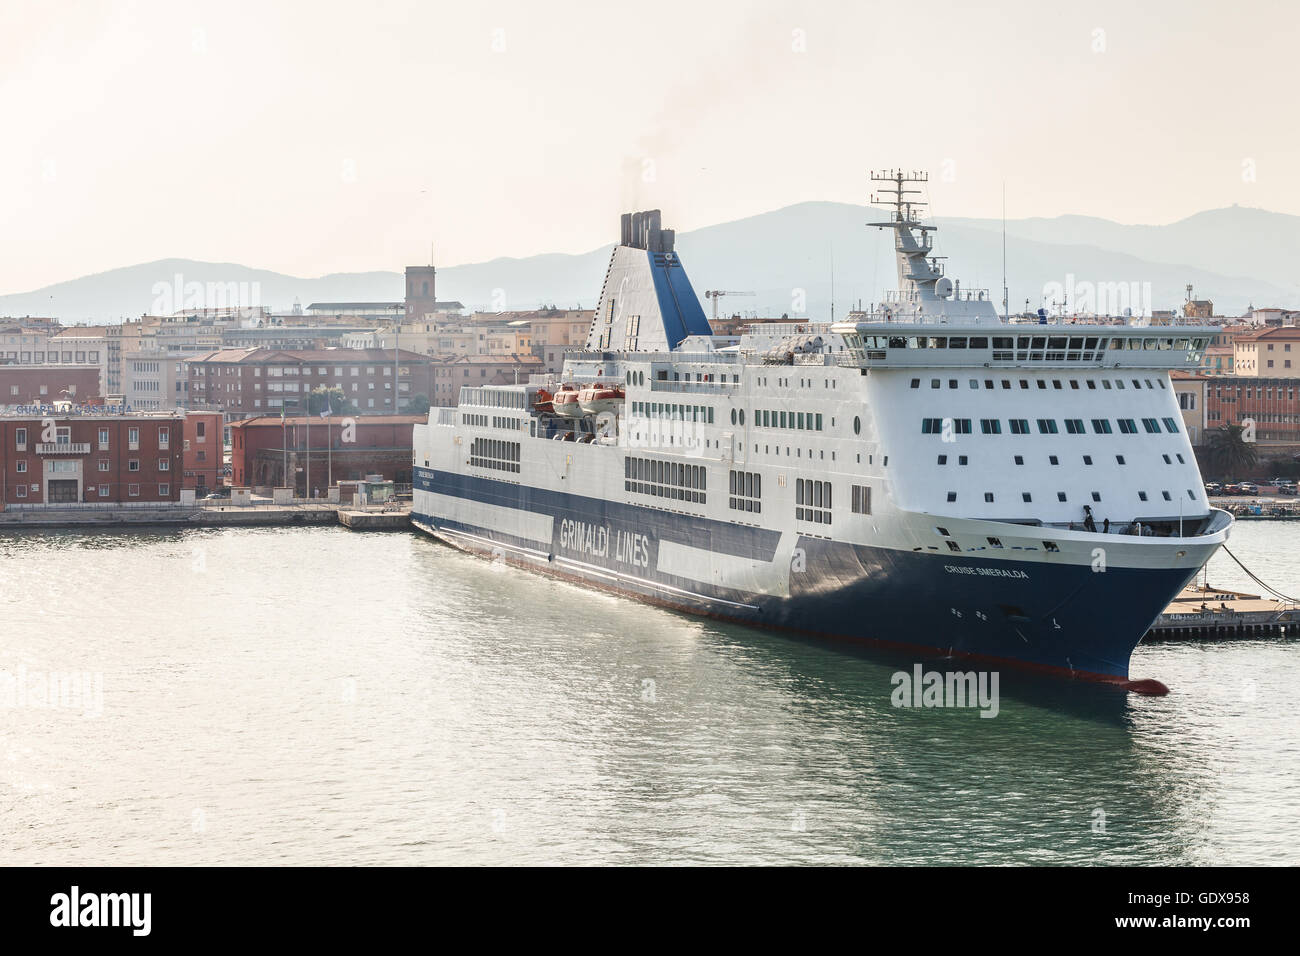 Livorno Olbia Ferry Grimaldi Lines Cruise Smeralda Ferry Boat The Port In